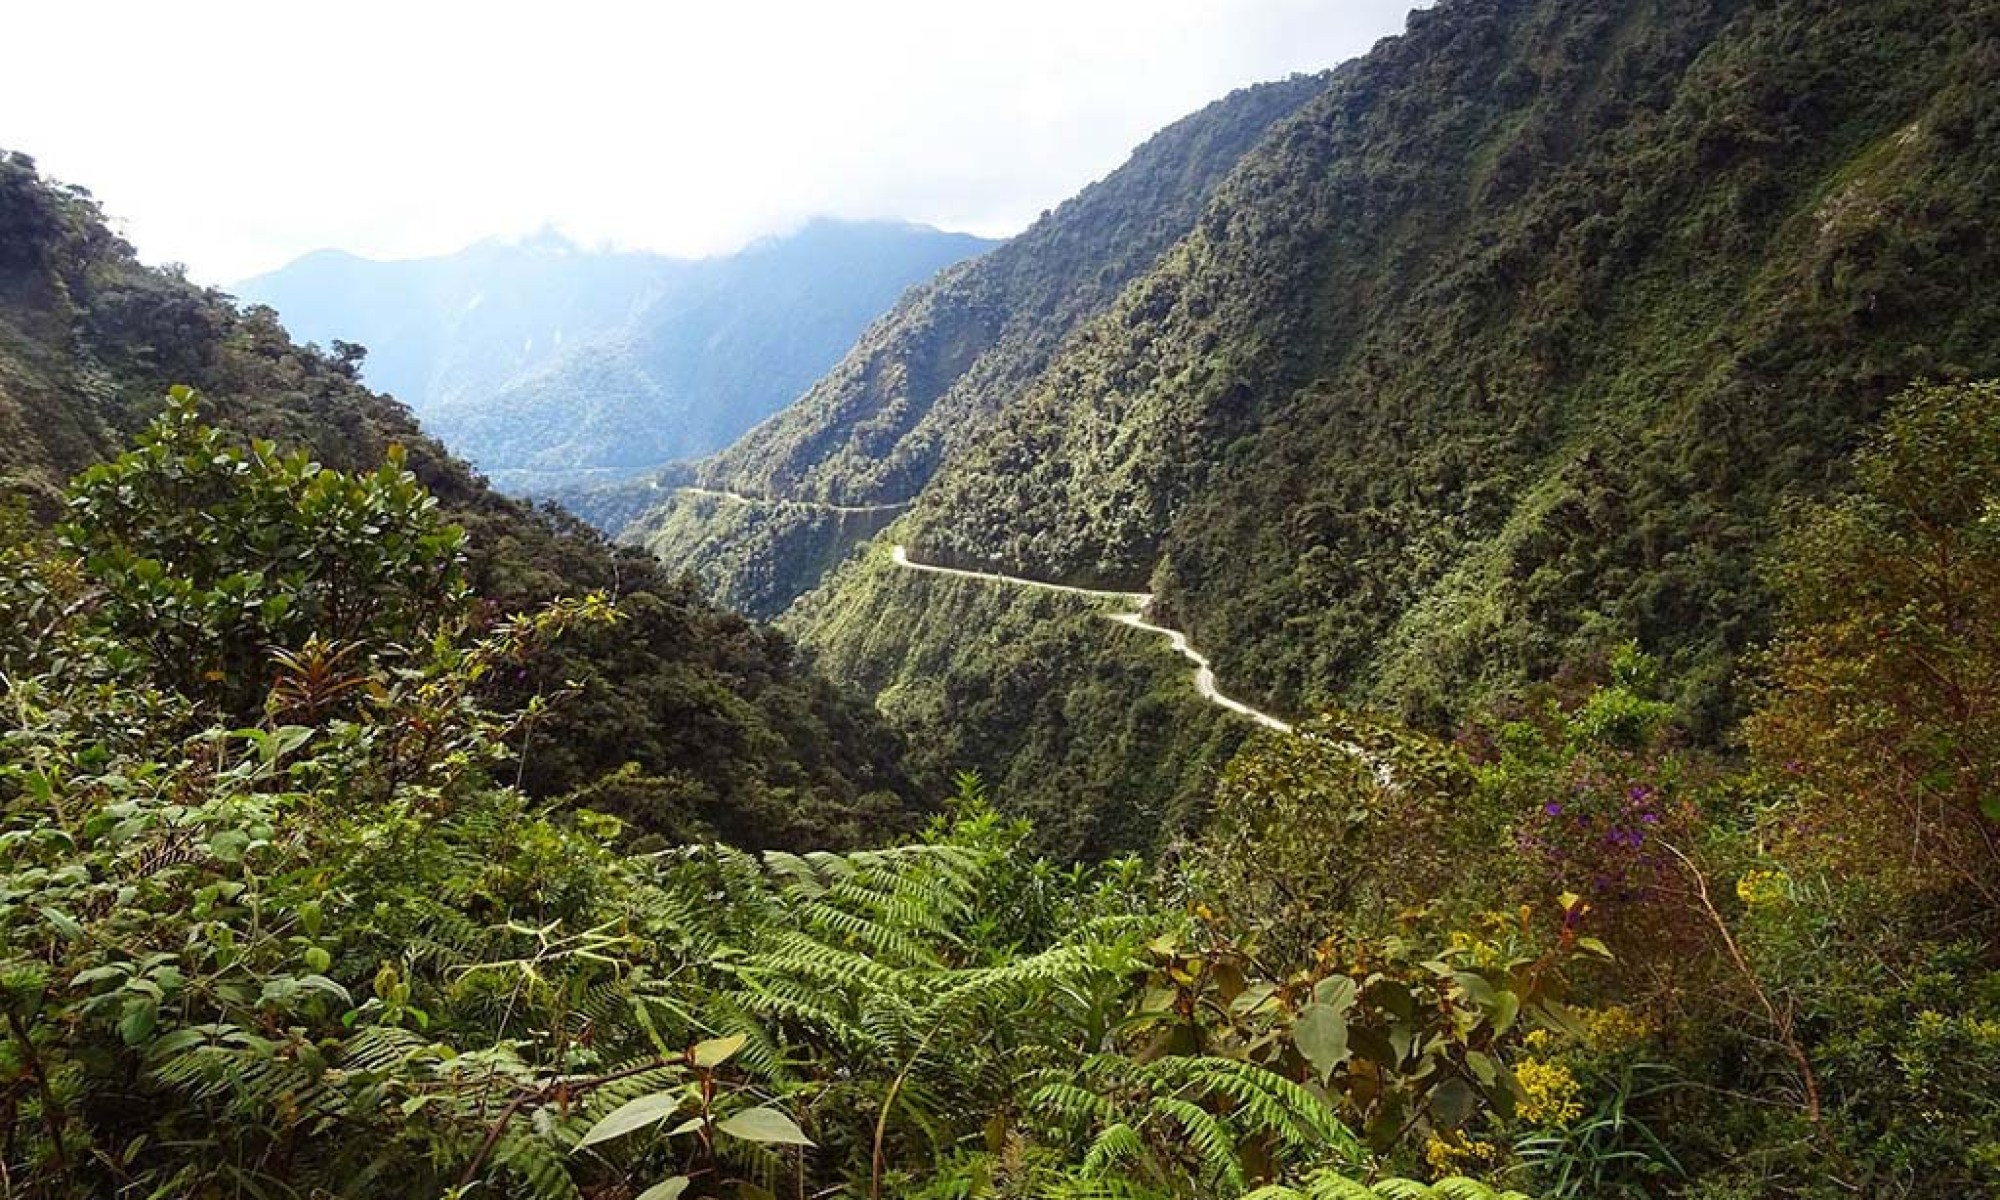 North Yungas Road in Bolivia is renowned as one of the world's most dangerous roads